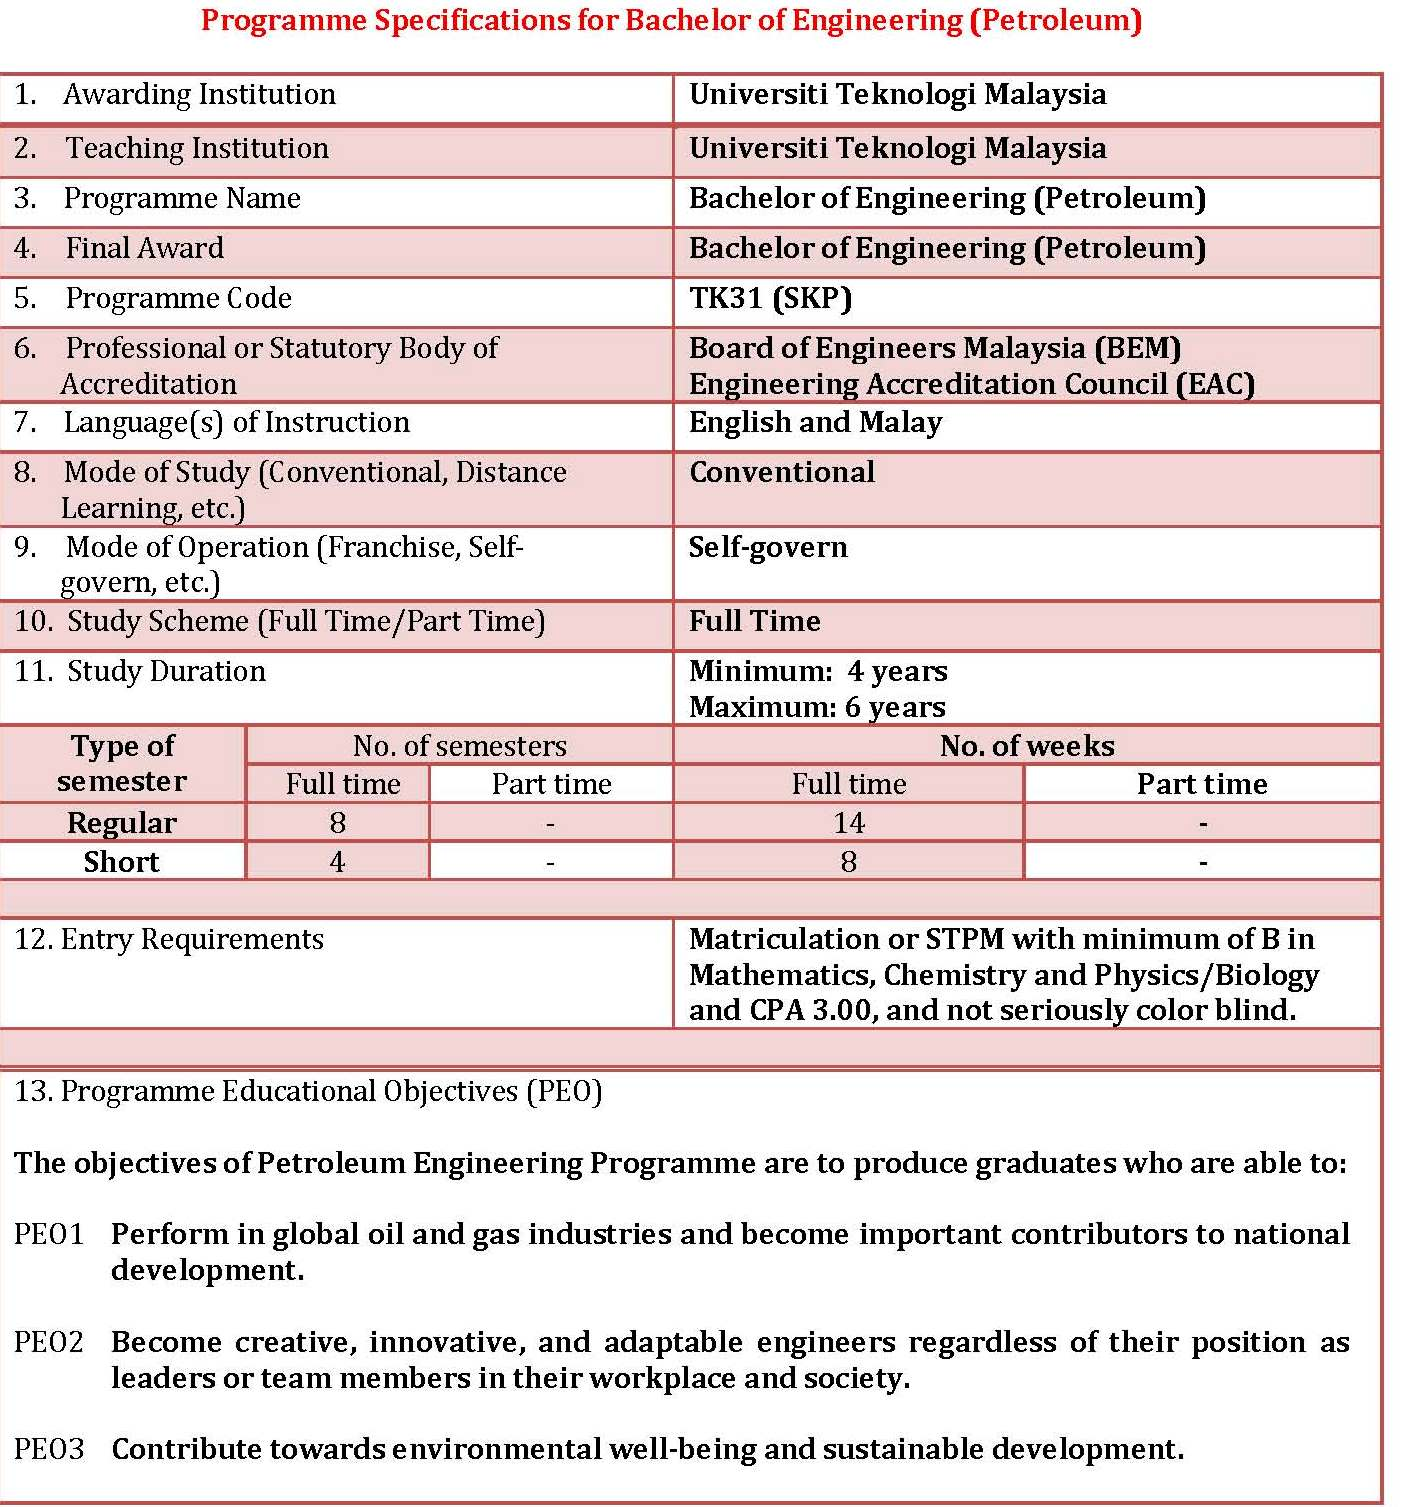 Programme Specification | School of Chemical & Energy Engineering